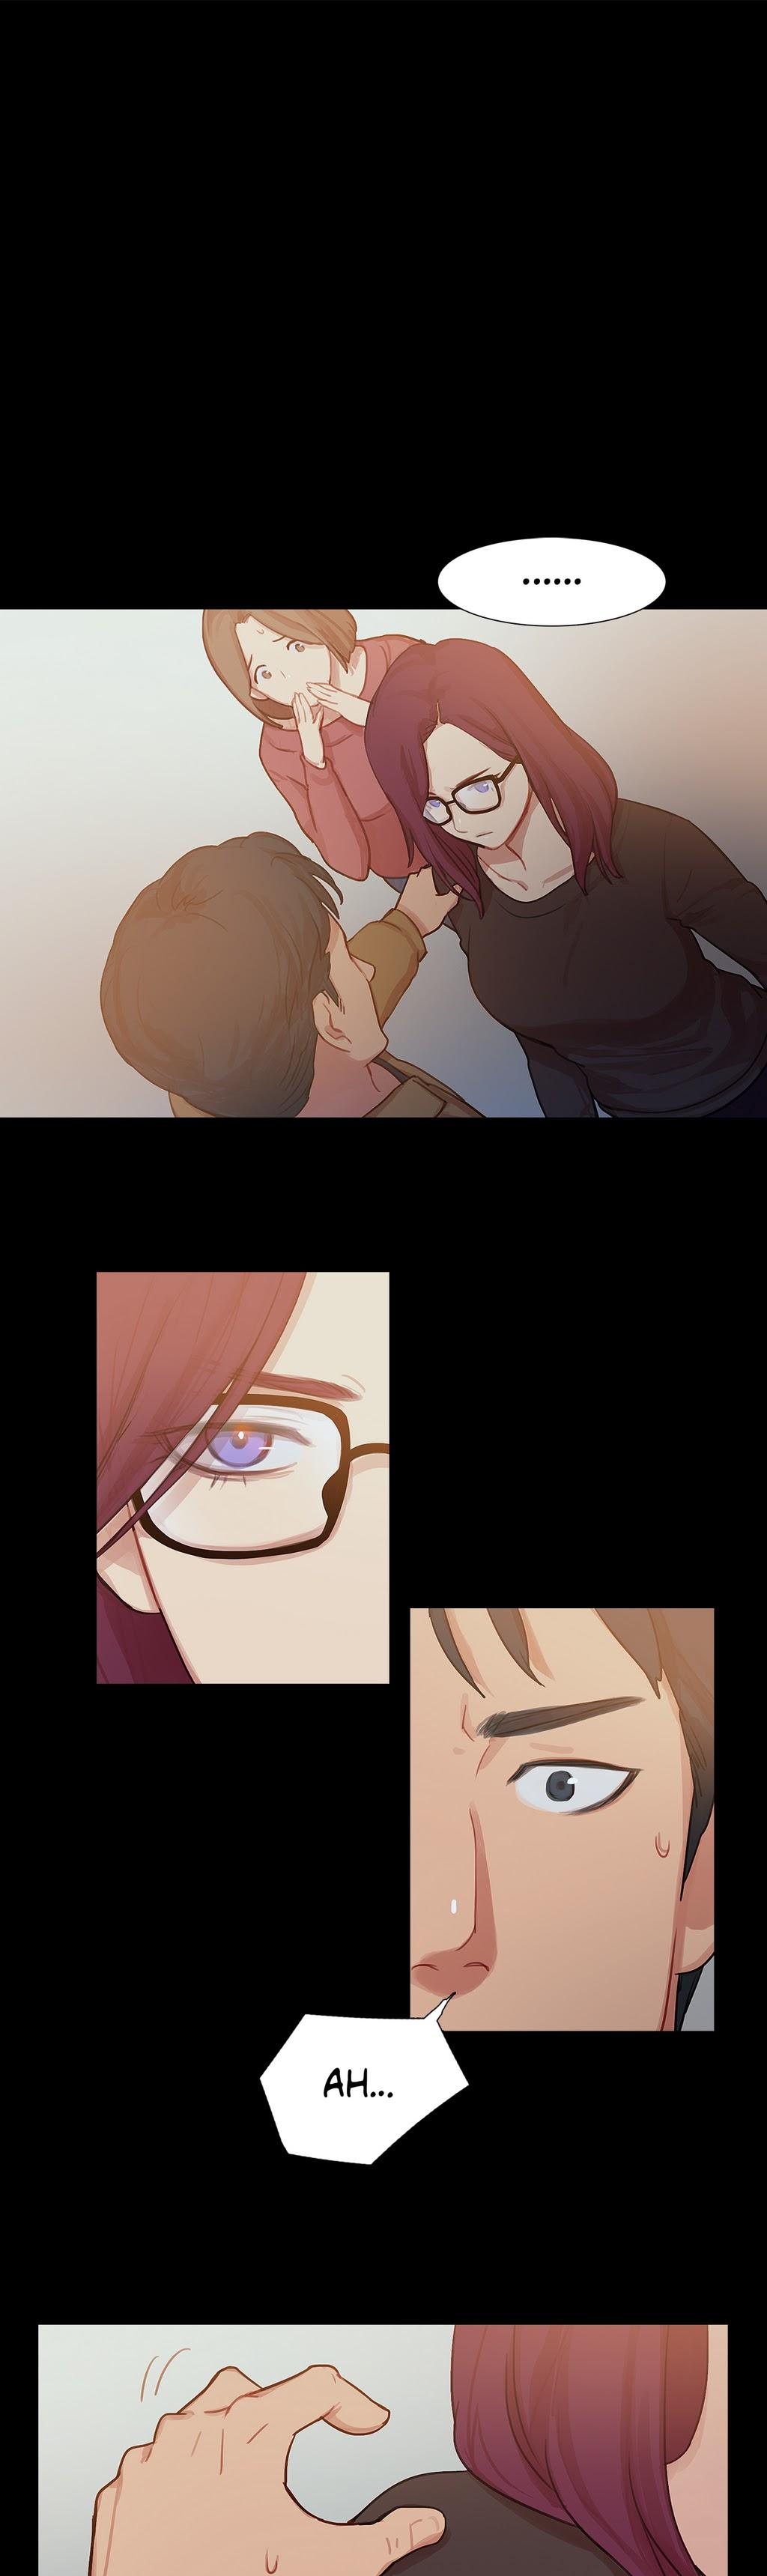 Scandal of the Witch Ch.1-10 76